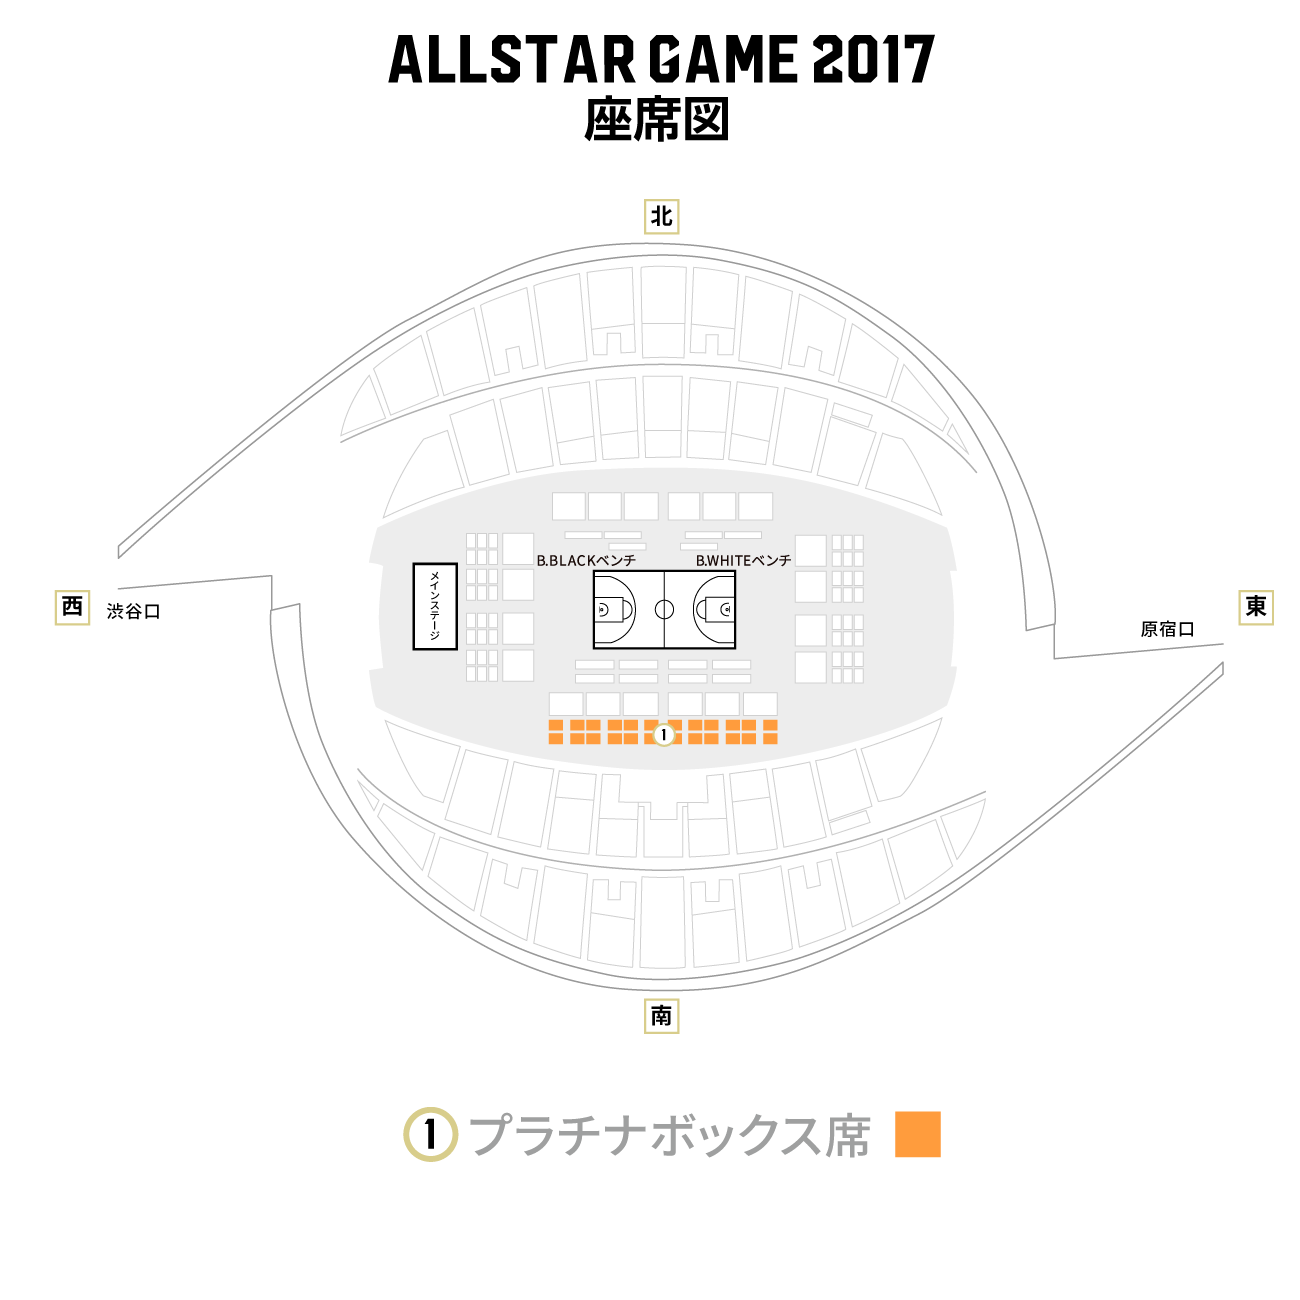 seatview_seat_01.png